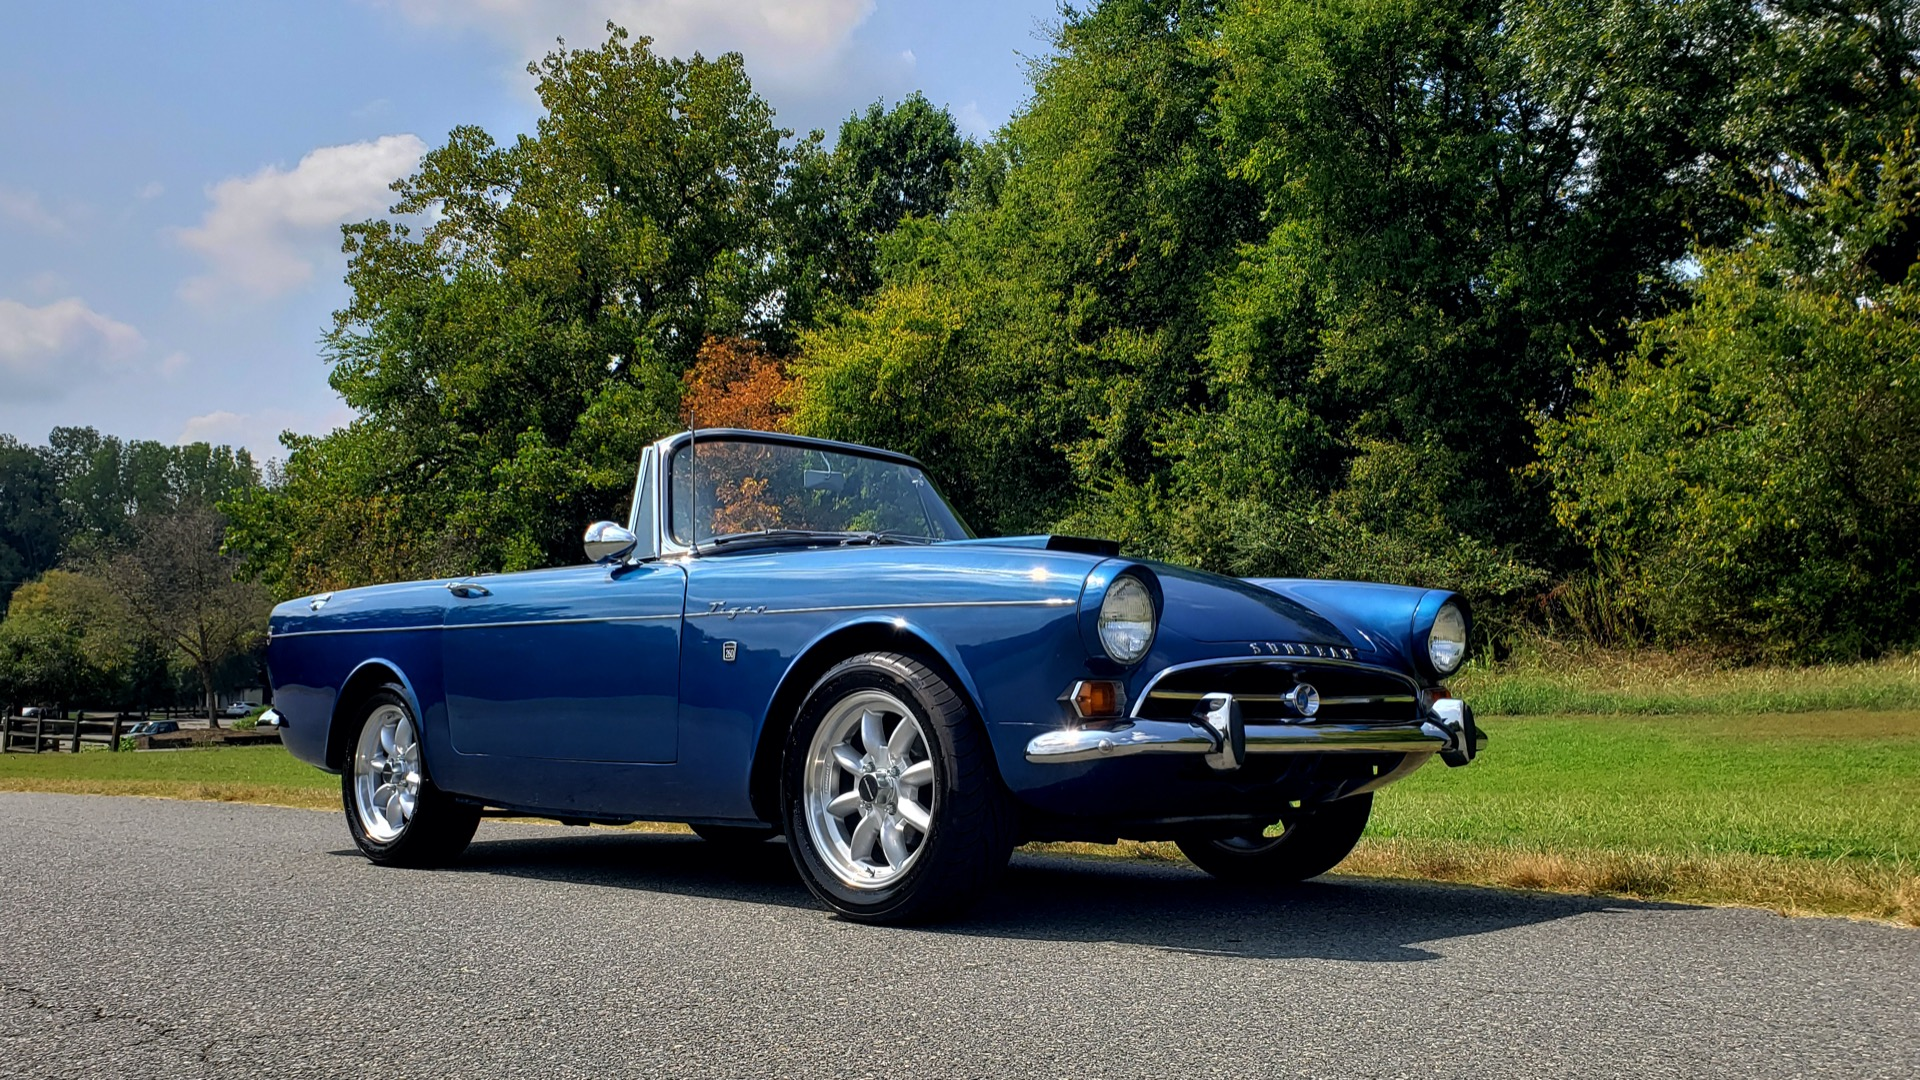 Used 1964 Sunbeam Tiger Convertible / 260ci V8 / 4-Speed Manual / Rear-Wheel Drive for sale $69,999 at Formula Imports in Charlotte NC 28227 7